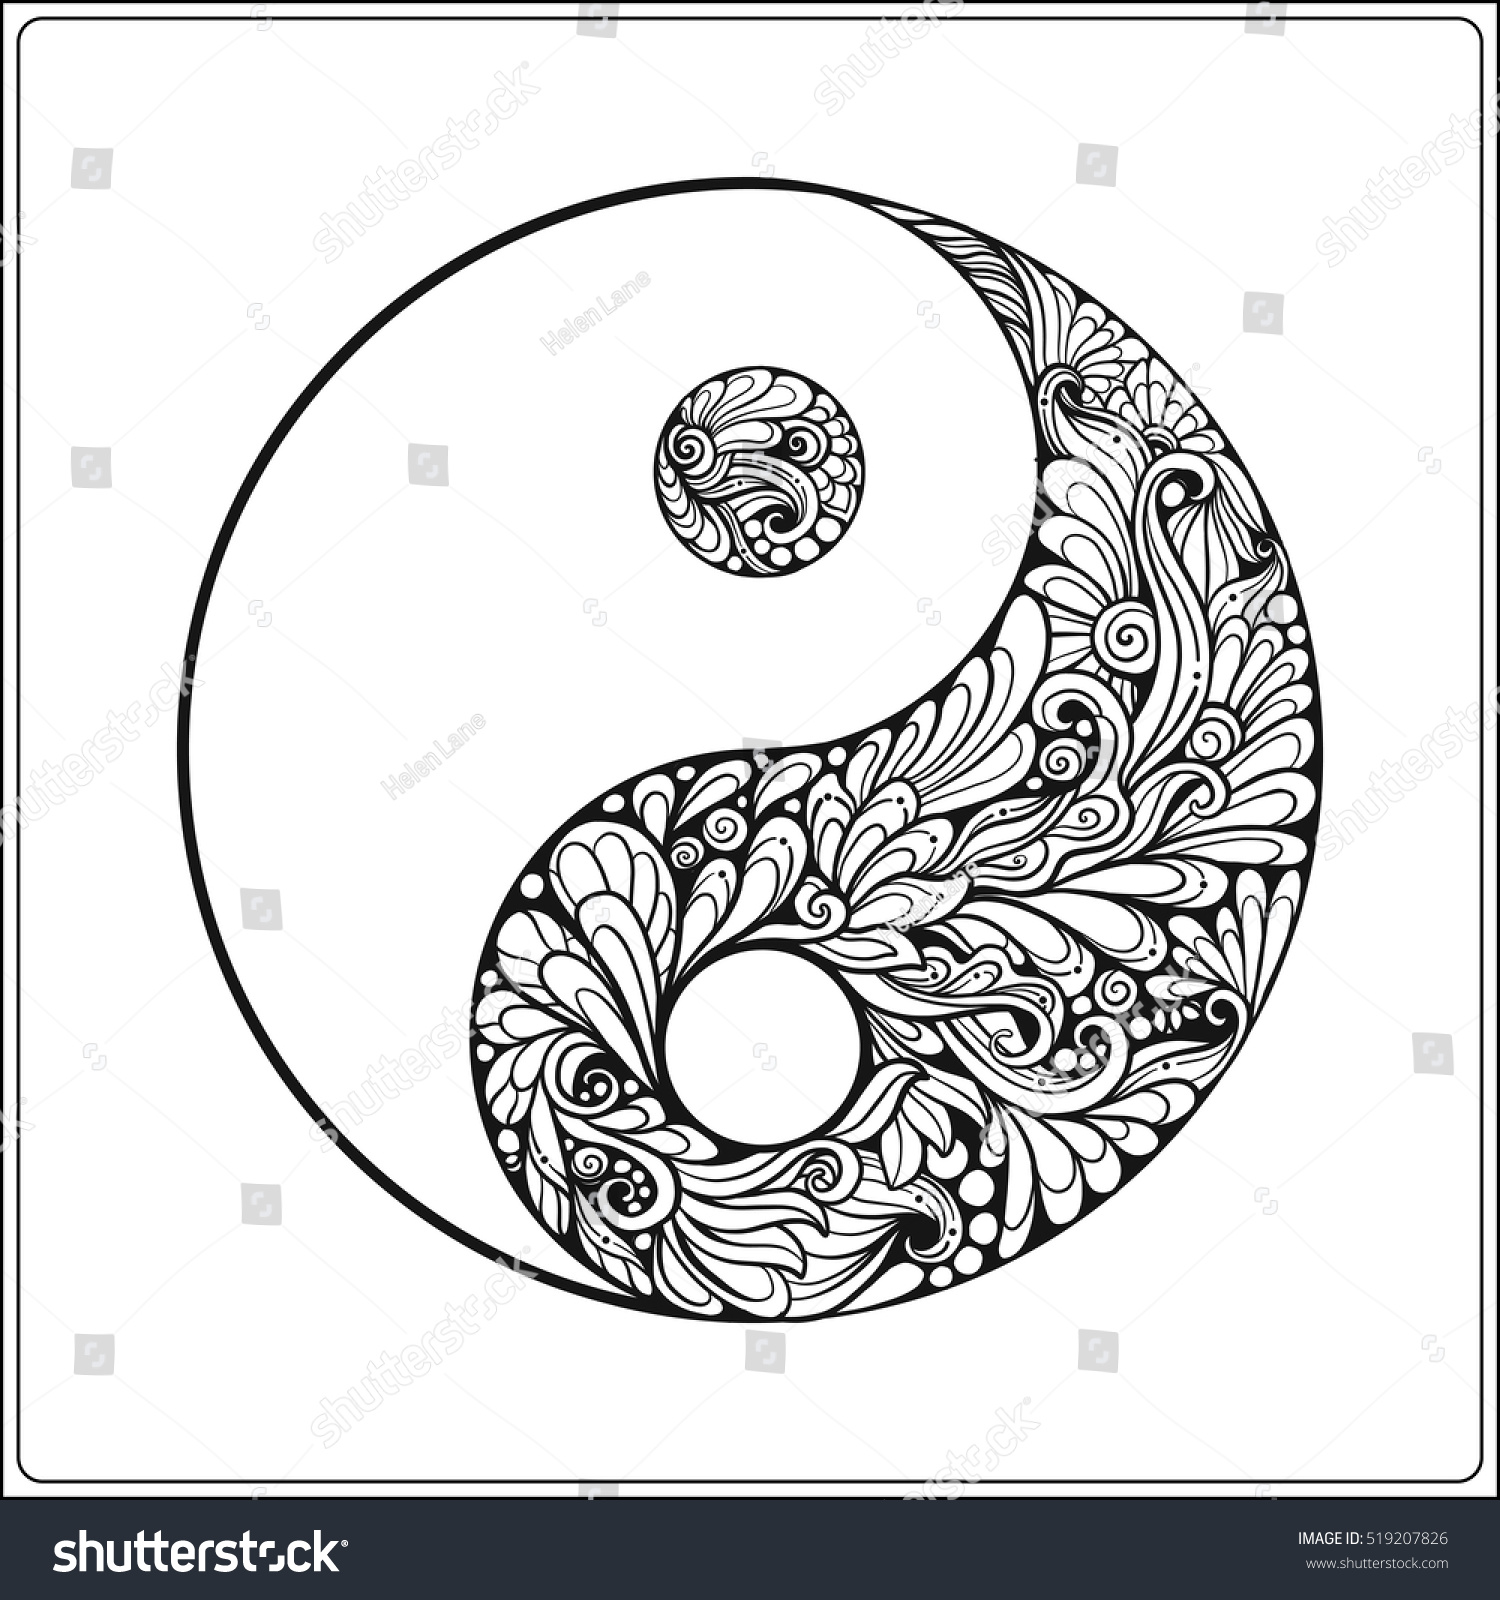 Coloring pages yin yang - Symbol Of Yin And Yang In Gold On Black Background Coloring Book For Adult